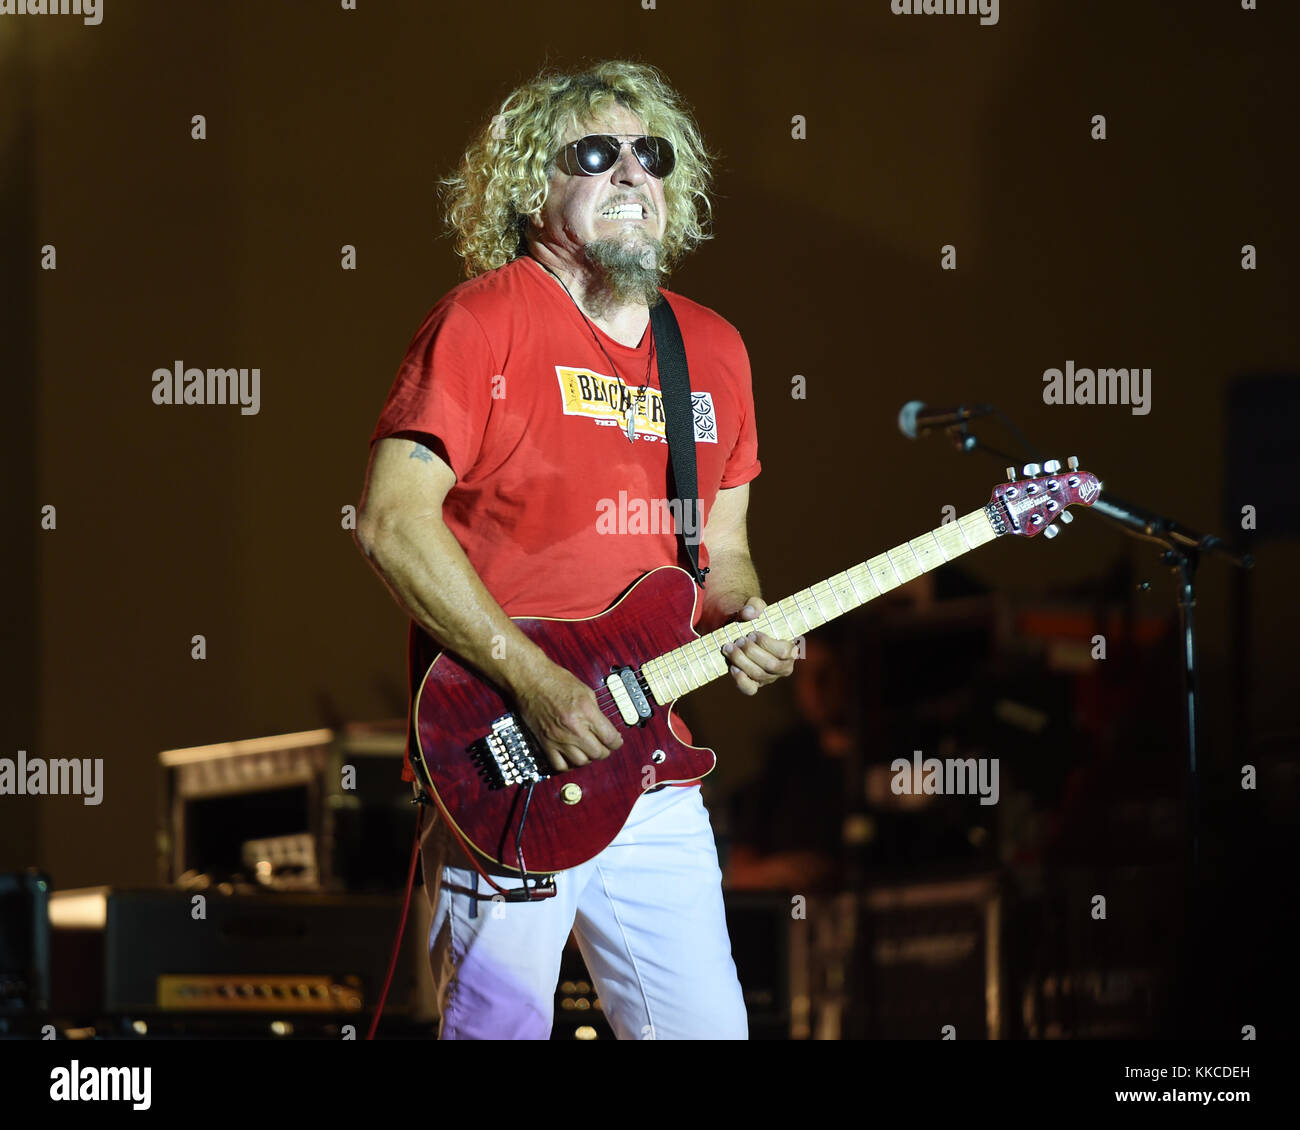 Sammy hagar stock photos sammy hagar stock images alamy for Planet motors in west palm beach